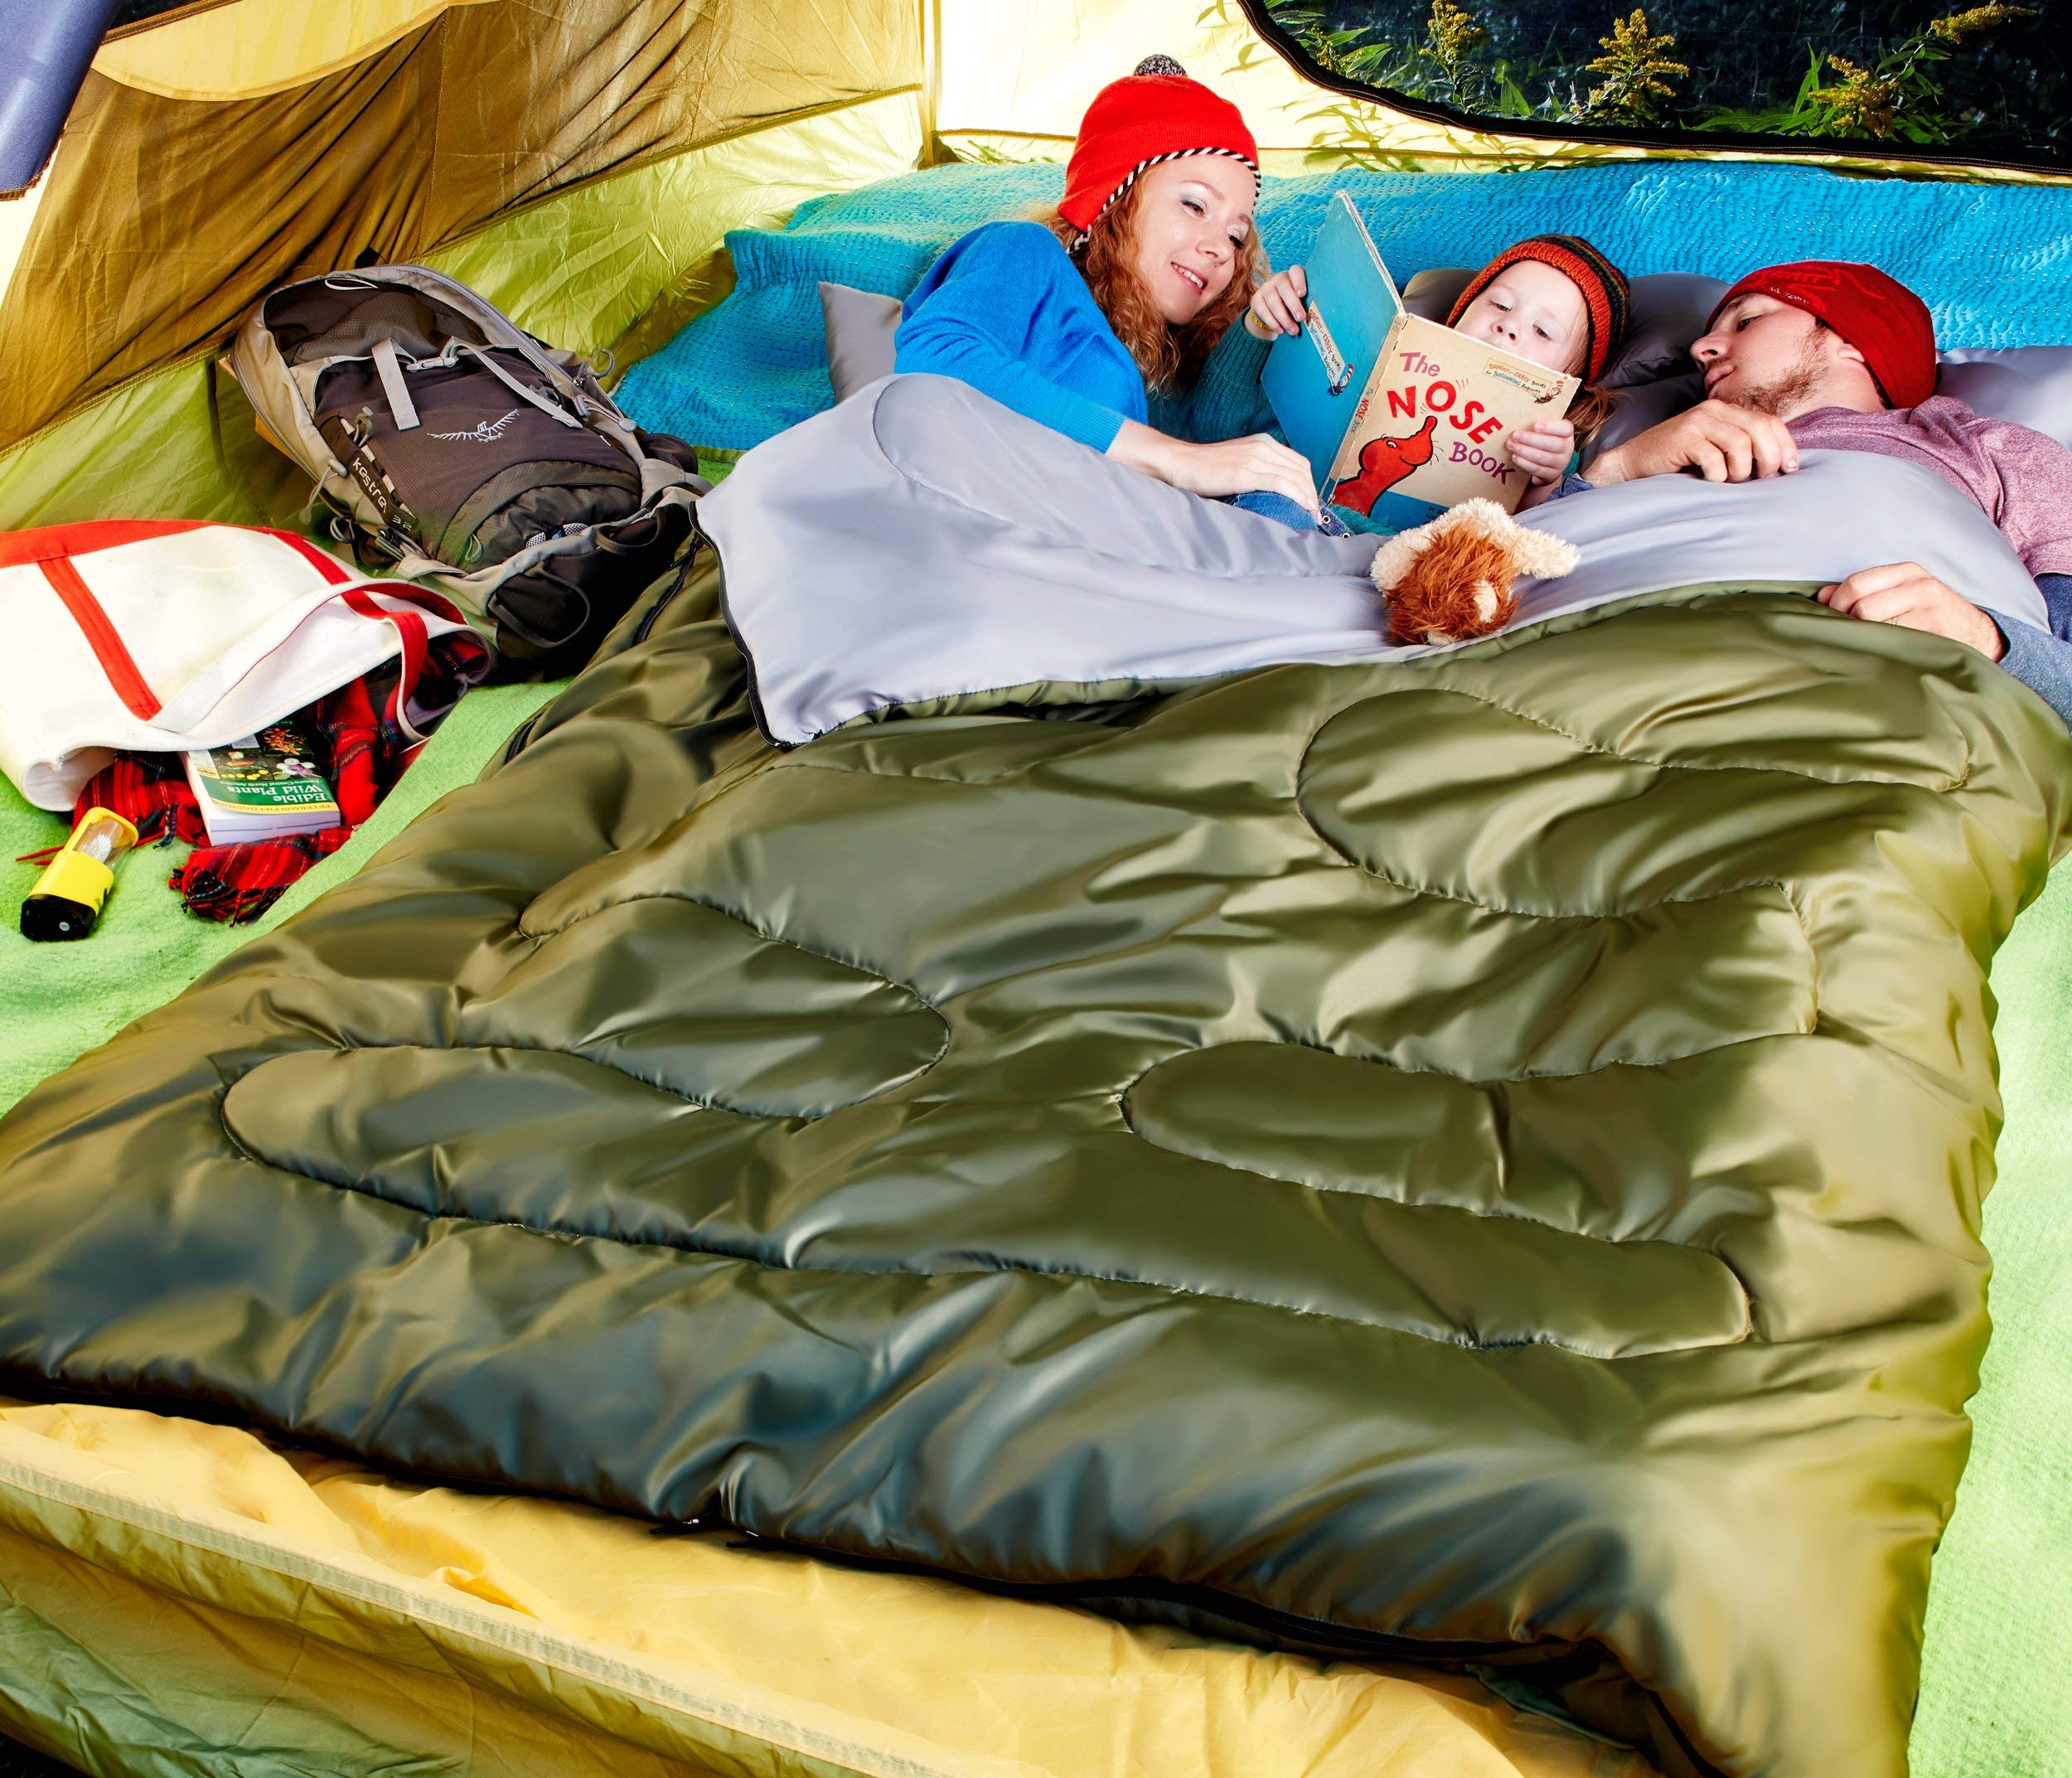 Sleepingo Double Sleeping Bag for Backpacking, Camping, Or Hiking. Queen Size XL! Cold Weather 2 Person Waterproof Sleeping Bag for Adults Or Teens. Truck, Tent, Or Sleeping Pad, Lightweight 4